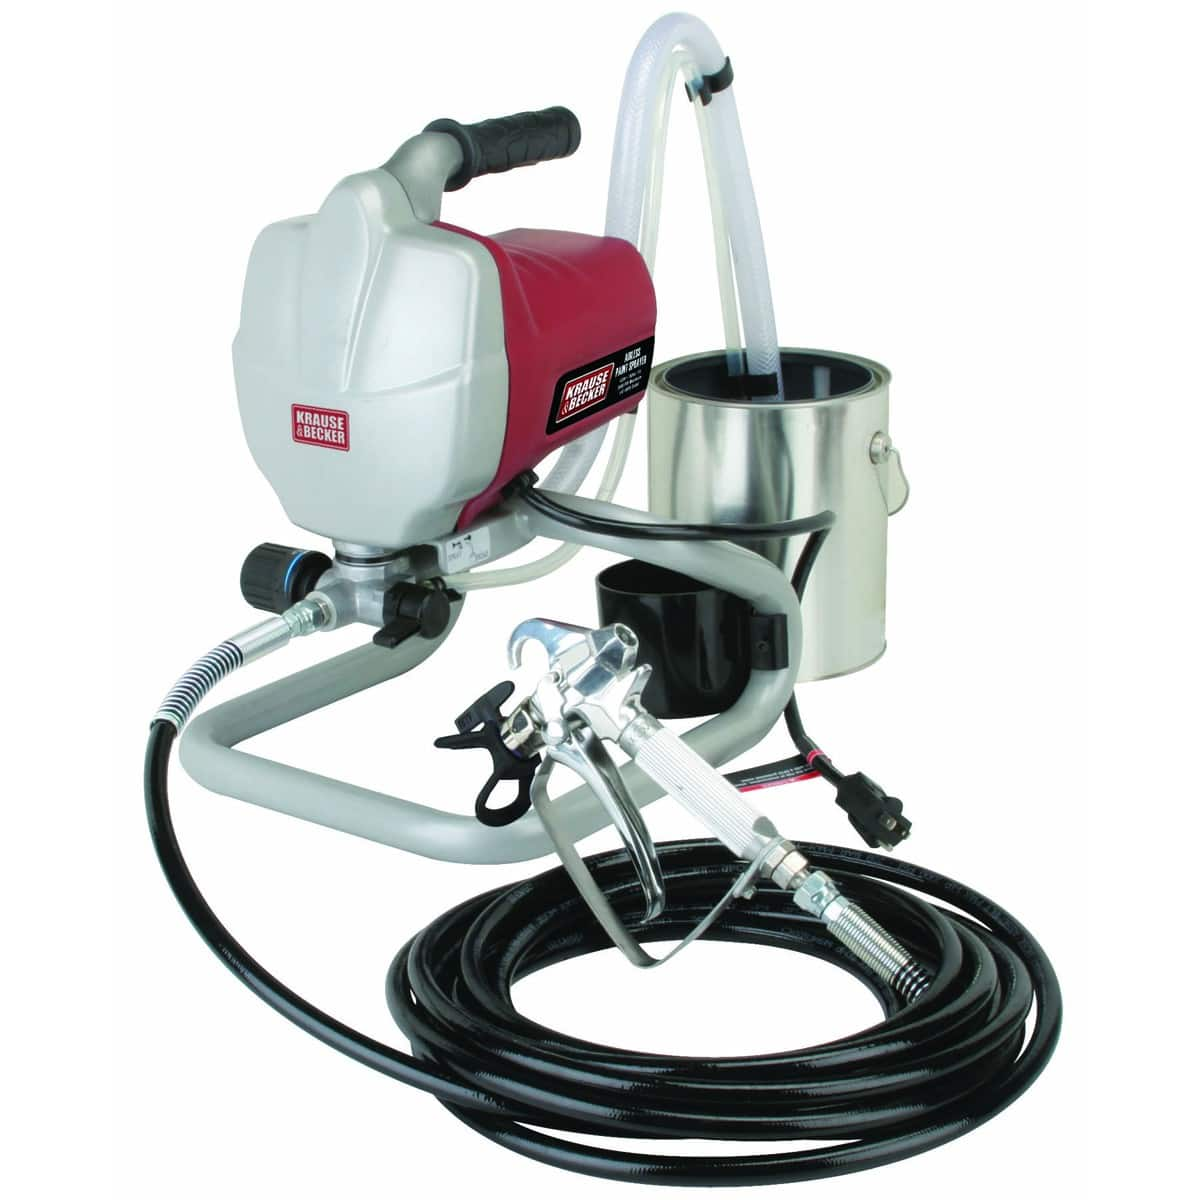 5/8 Horsepower Airless Paint Sprayer Kit $144 (was $300 now 180 - 20%) - Harbor Freight